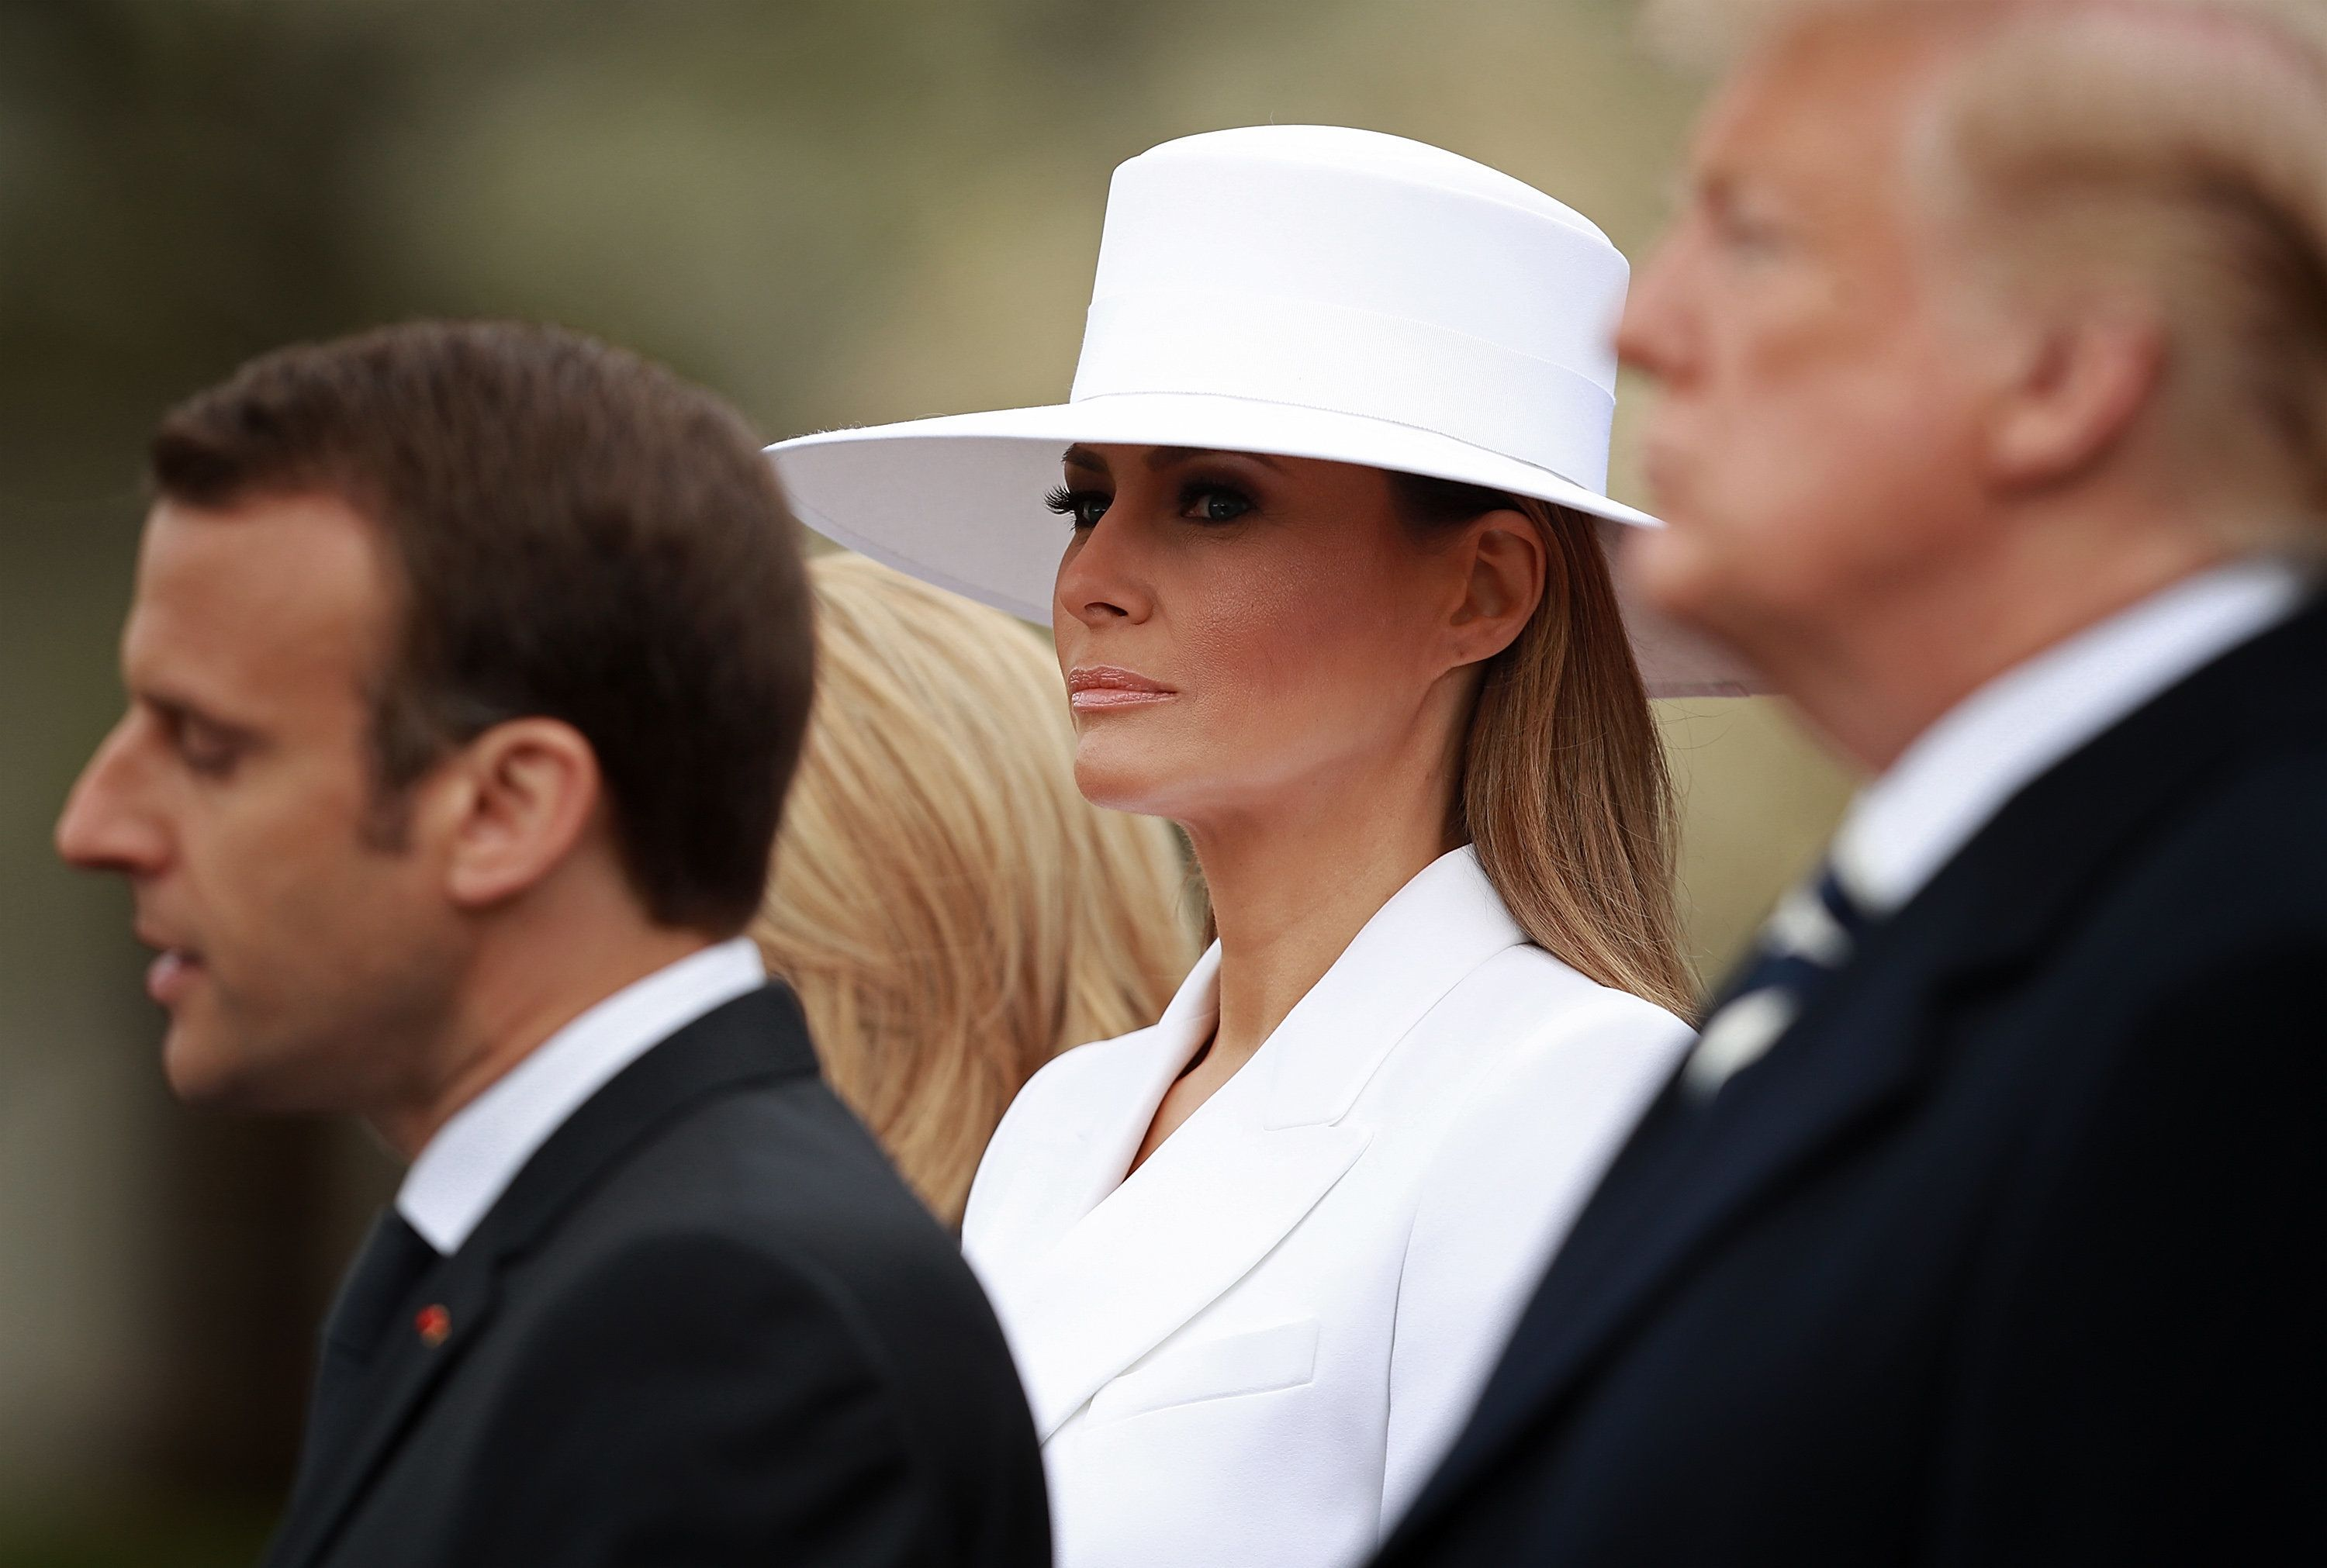 WASHINGTON, DC - APRIL 24:  U.S. first lady Melania Trump listens as French President Emmanuel Macron (L) speaks during a state arrival ceremony at the White House with U.S. President Donald Trump April 24, 2018 in Washington, DC. Macron and Trump are scheduled to meet throughout the day to discuss a range of bilateral issues as Trump holds his first official state visit with the French president.  (Photo by Chip Somodevilla/Getty Images)